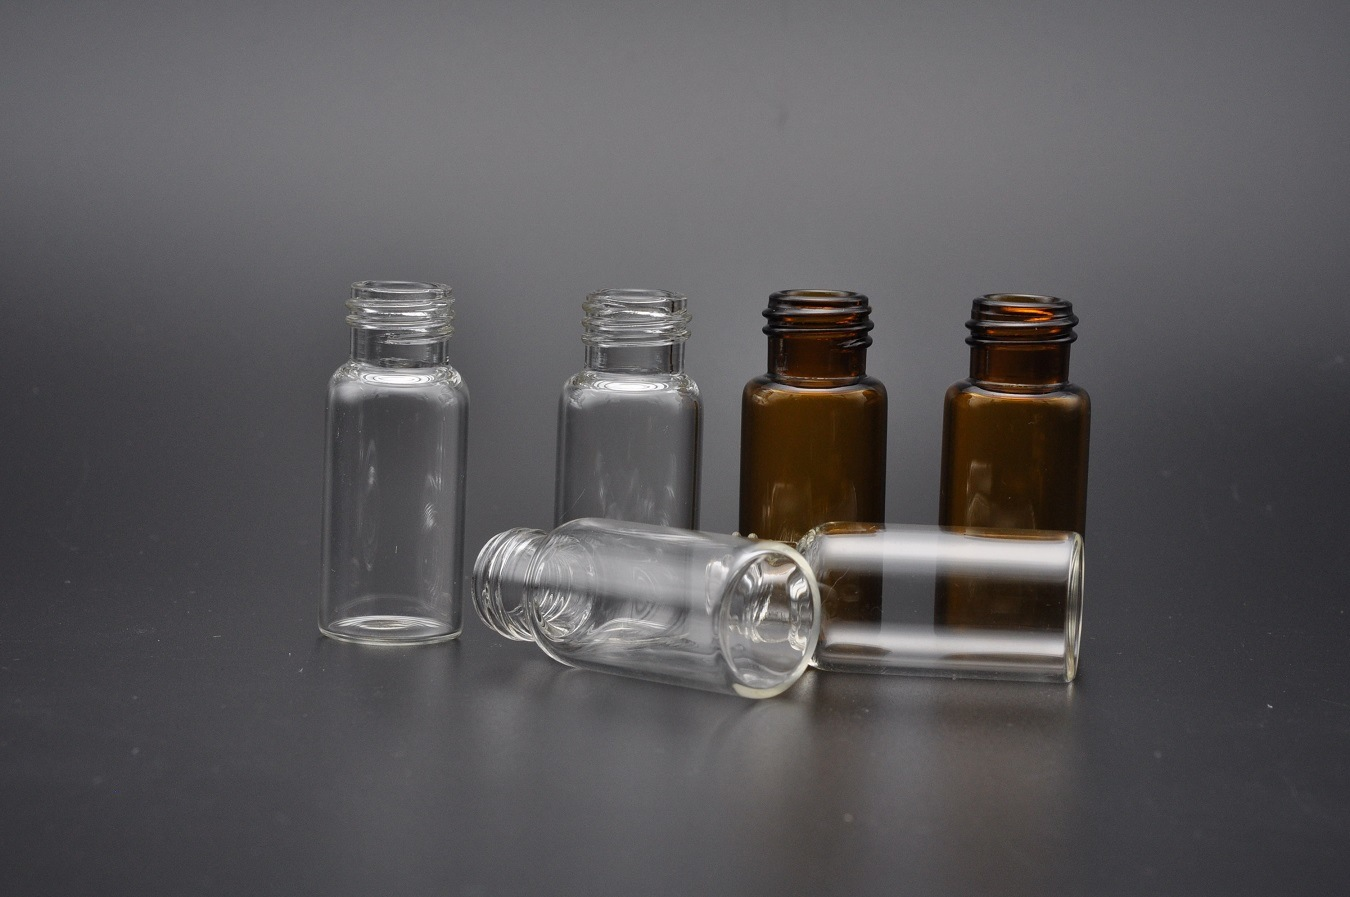 5ml Screw Glass Vials for Medical and Cosmetic and Lab Use